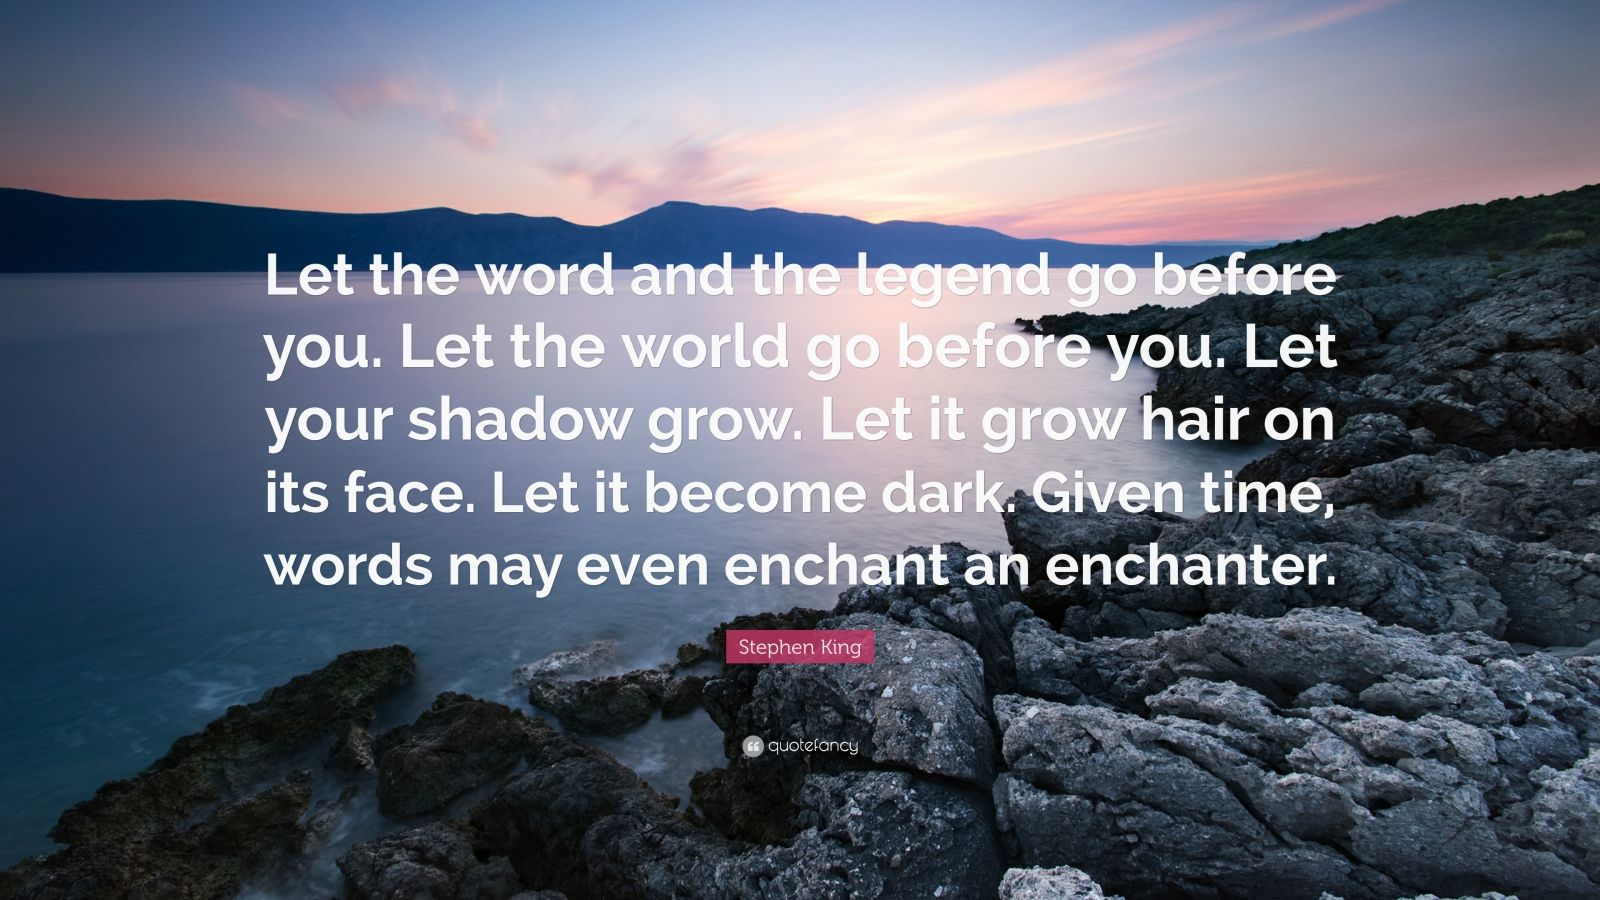 """Stephen King Quote: """"Let the word and the legend go before you. Let the world go before you. Let your shadow grow. Let it grow hair on its face. Let it become dark. Given time, words may even enchant an enchanter."""""""